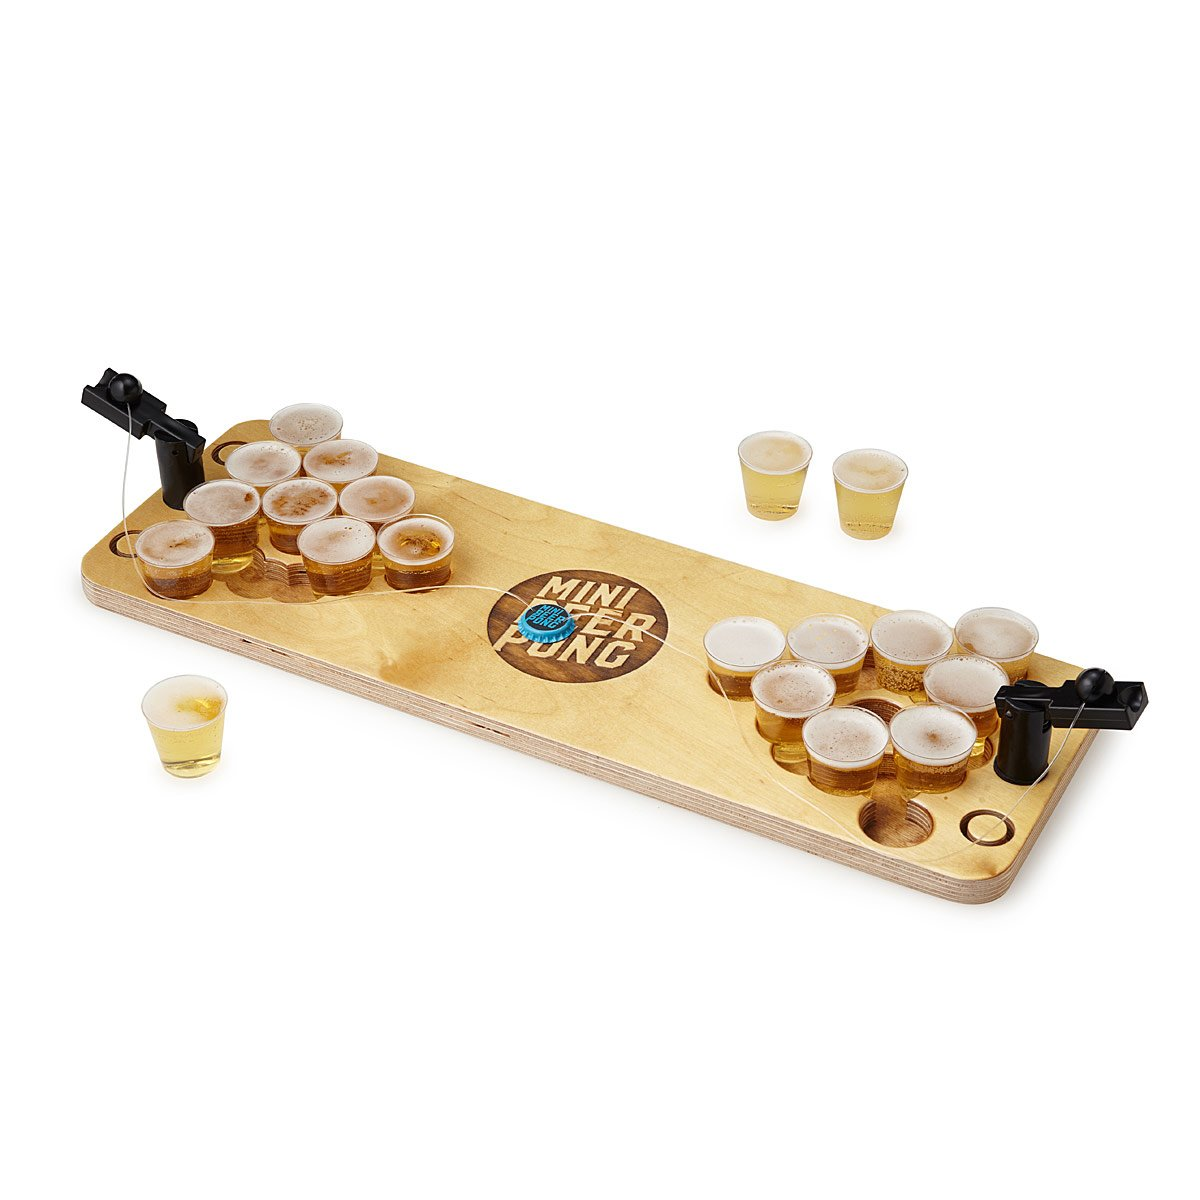 <p>YASSSSS, take that man back to his college days with this Mini Beer Pong. A dorm room classic grows up in this mini version of beer pong that sports catapults and a birch wood base. $60.00{&nbsp;} (Image: Uncommongoods){&nbsp;}</p><p></p>